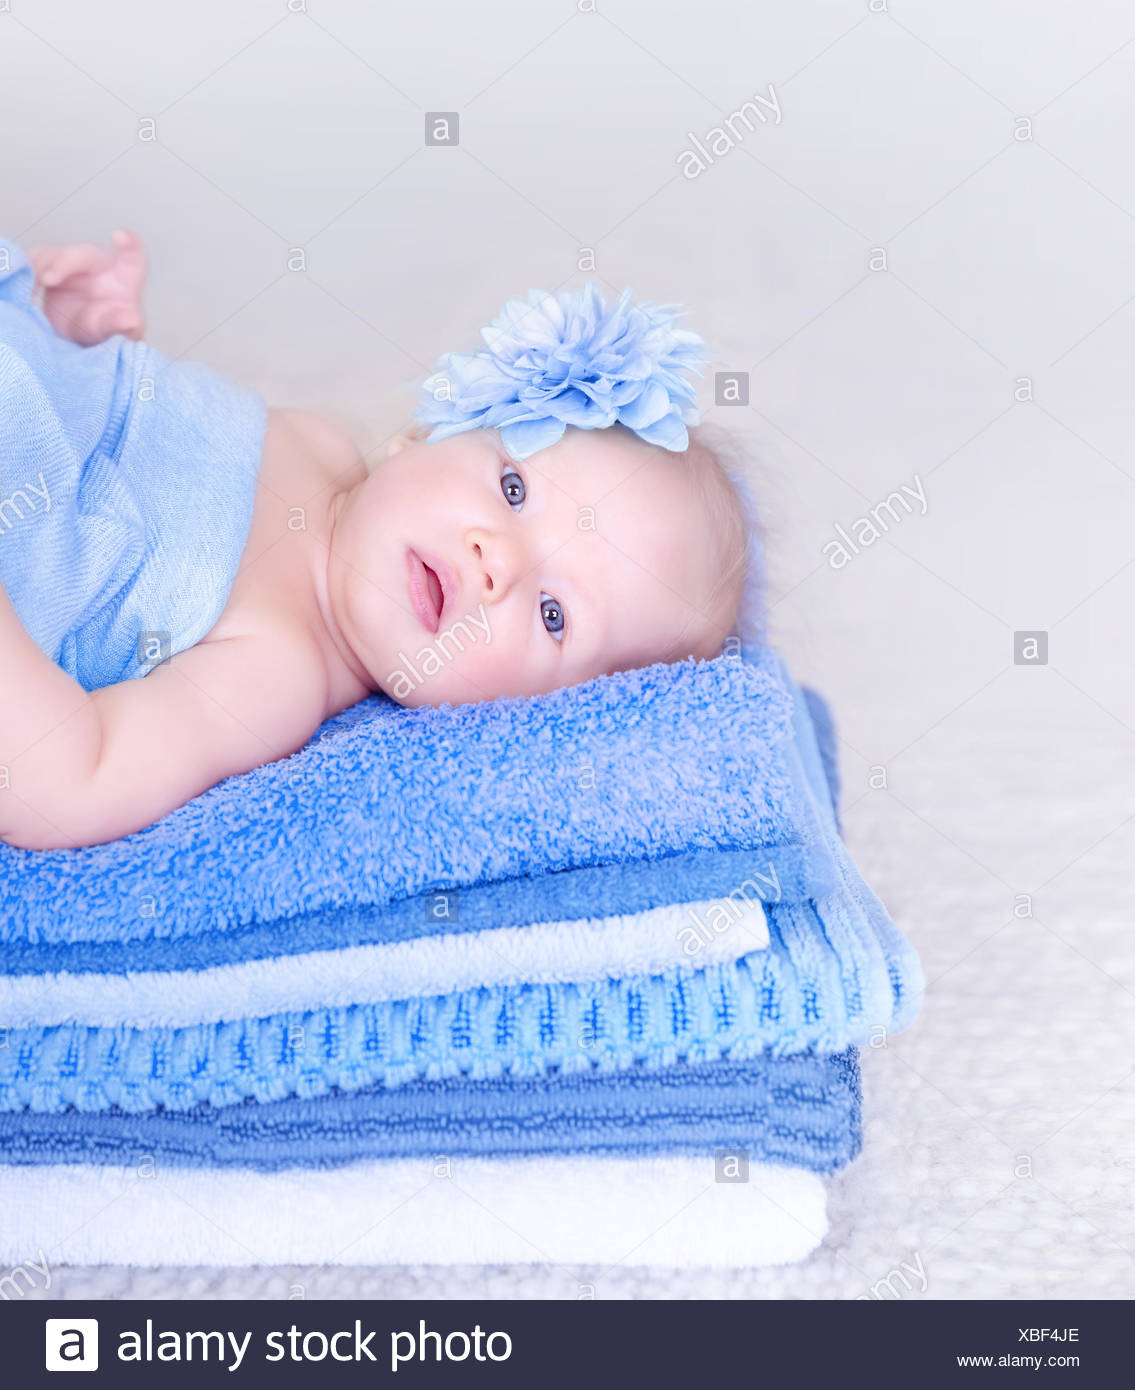 Baby Bath Accessories On White Stock Photos & Baby Bath Accessories ...